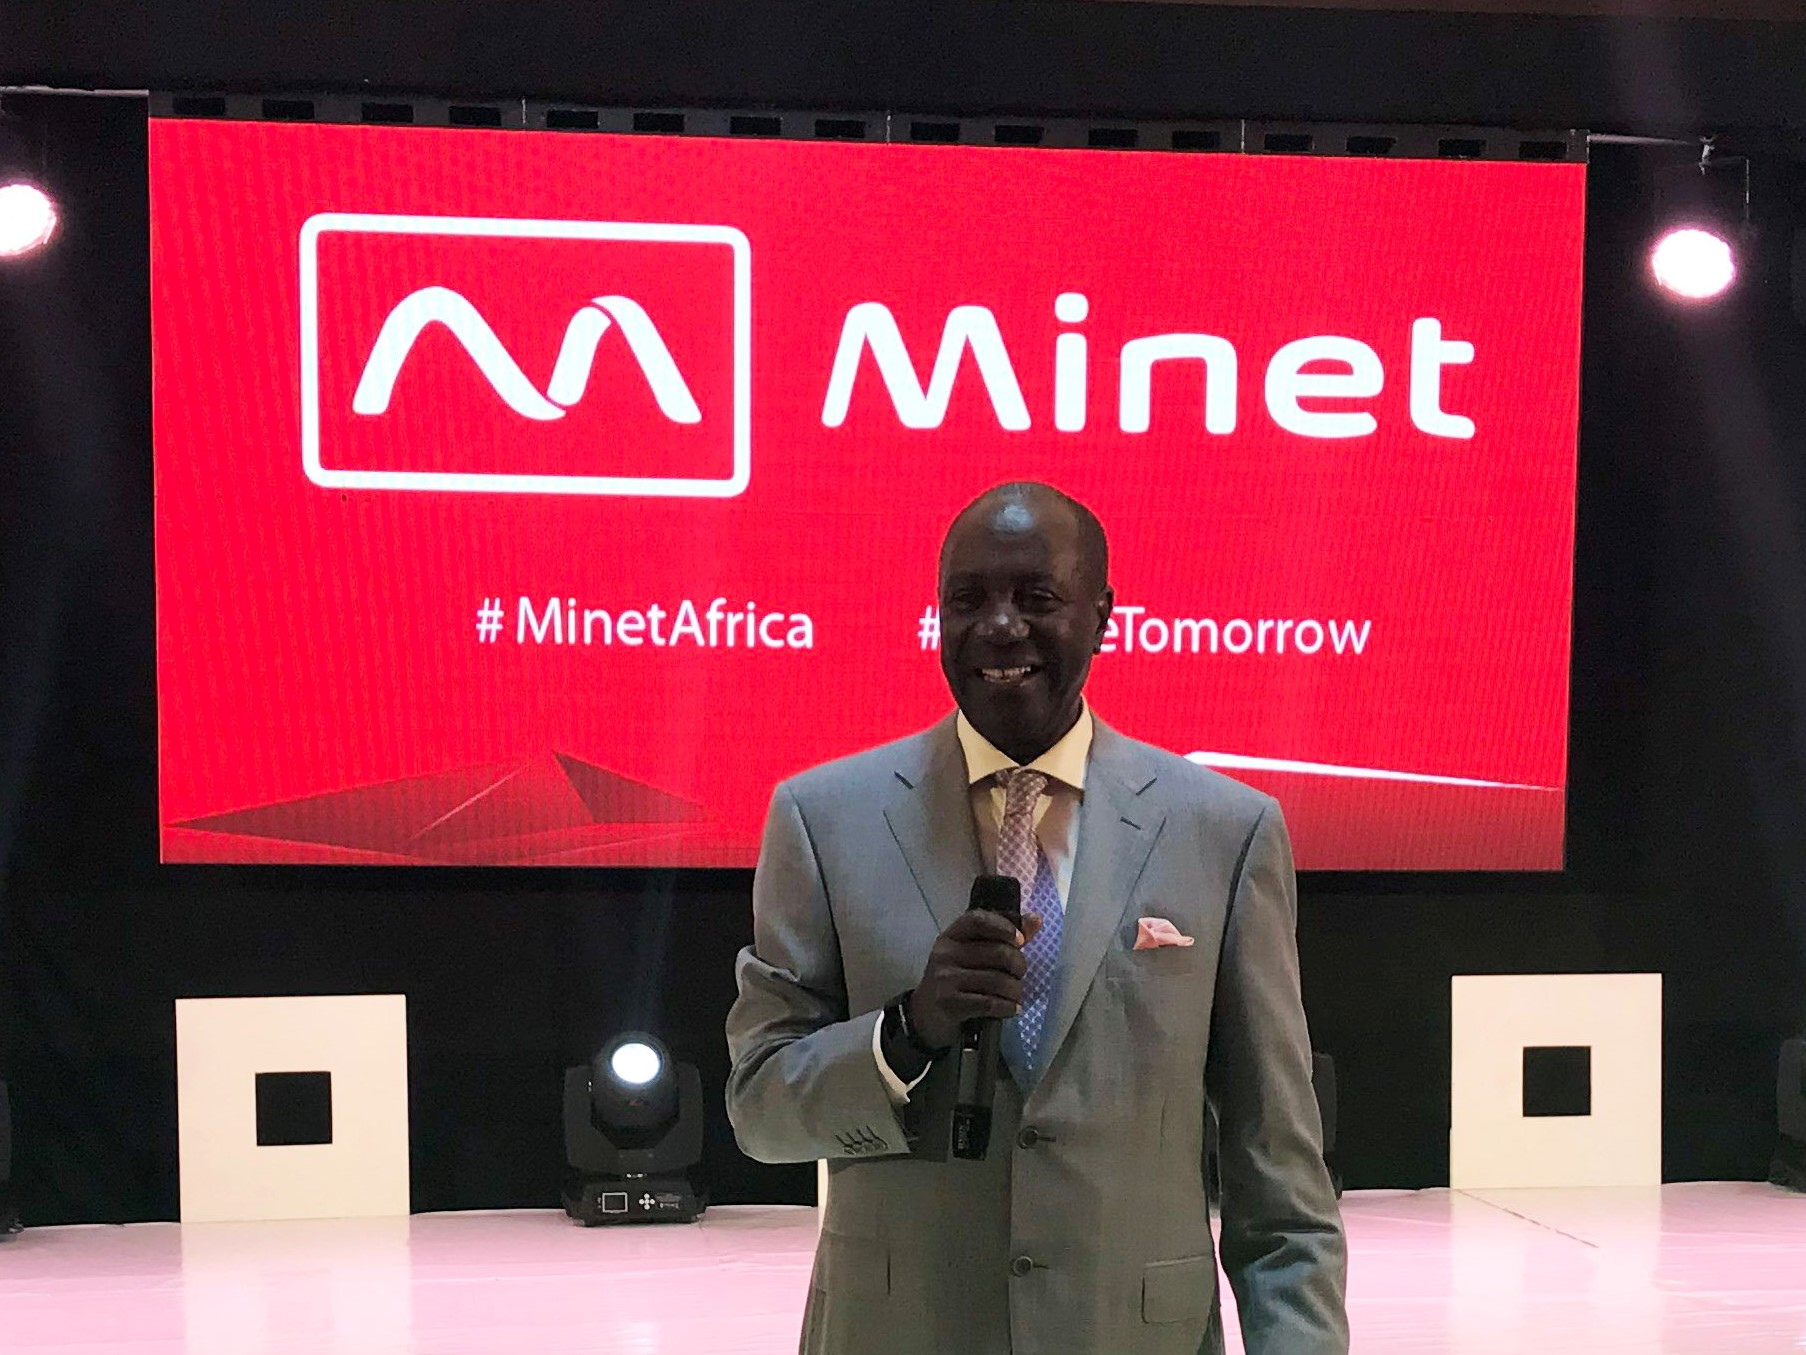 Aon Minet Gives Teachers up to 30th June to change their Dependants